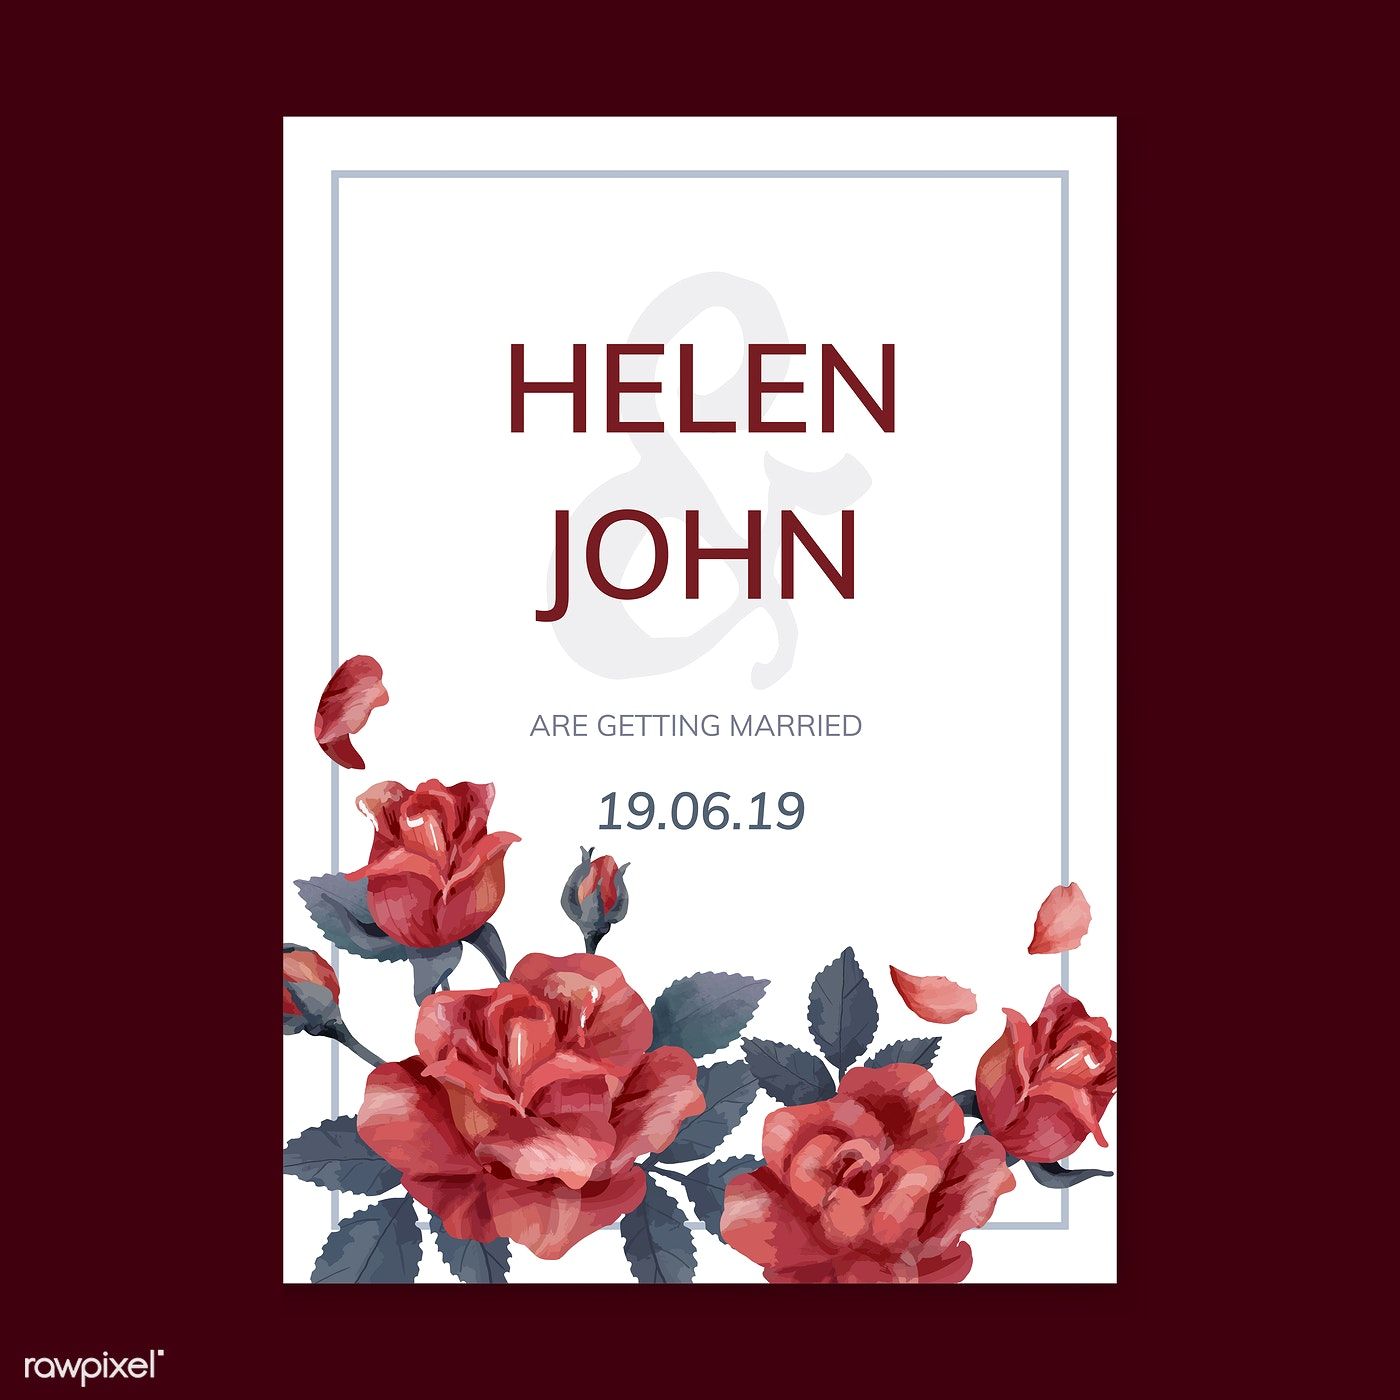 Invitation card with a red color scheme - ID: 466690